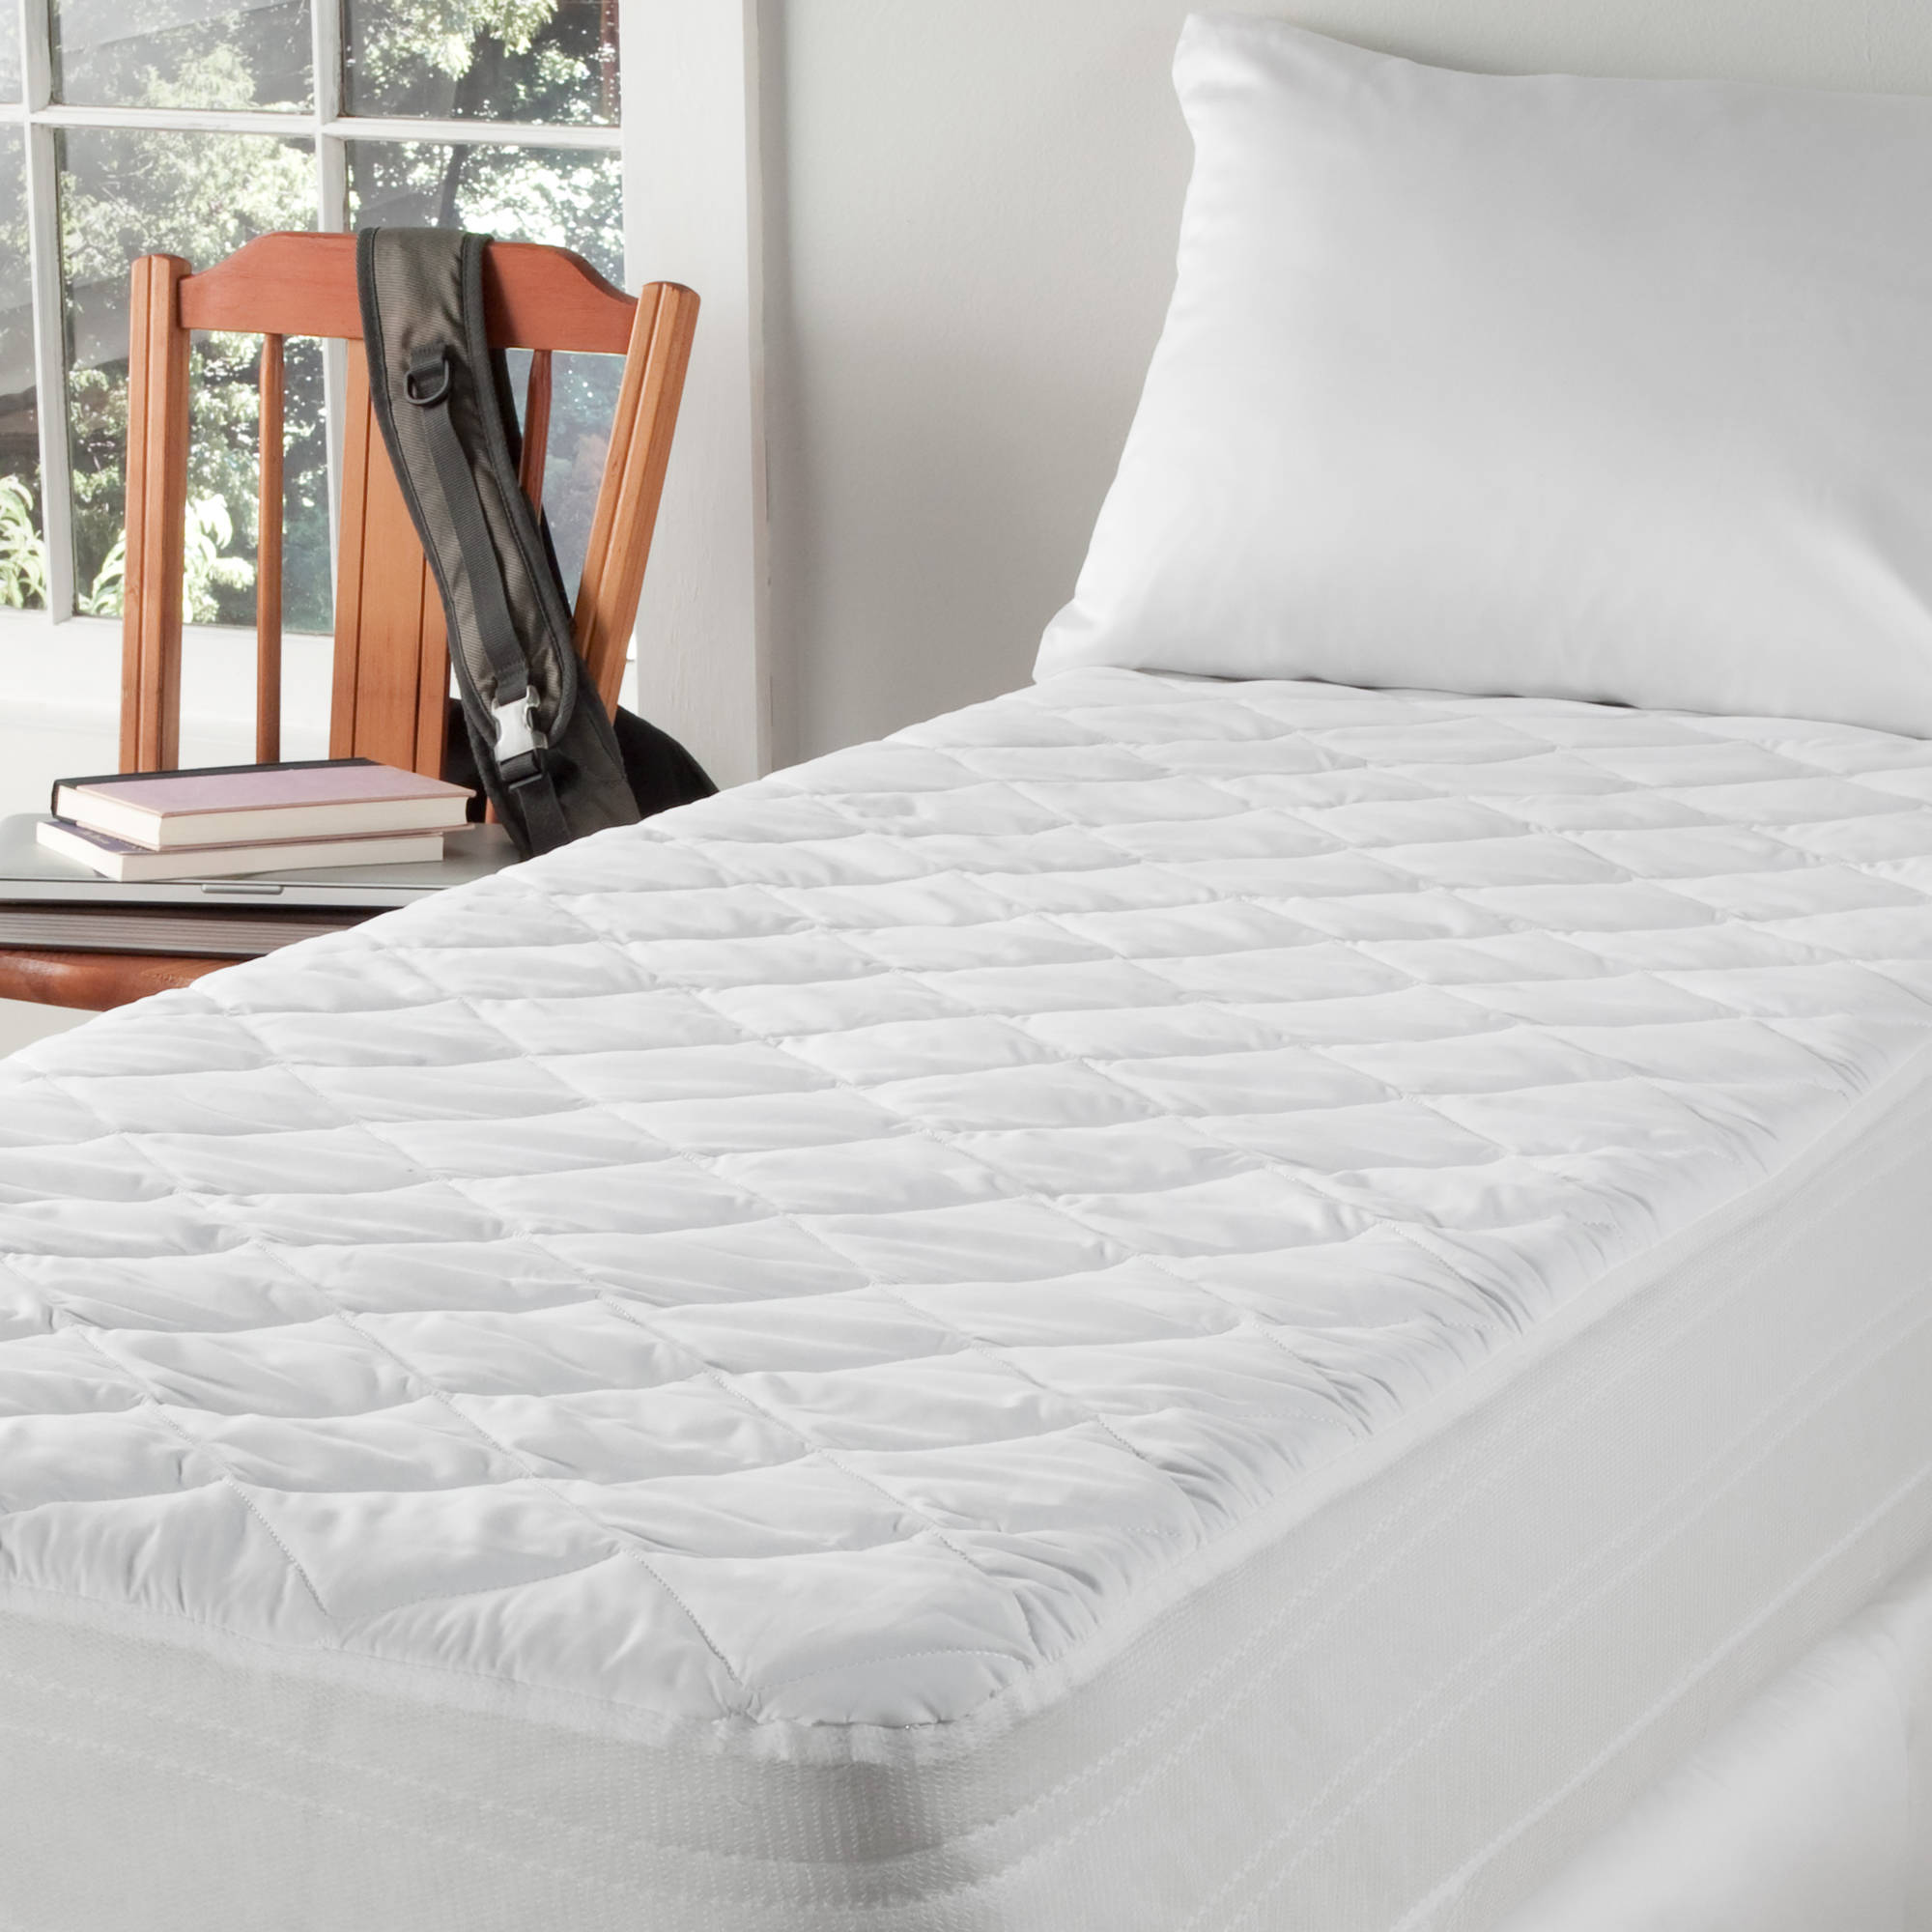 Twin Xl Dorm Mattress Waterproof Protector Pad And Cover